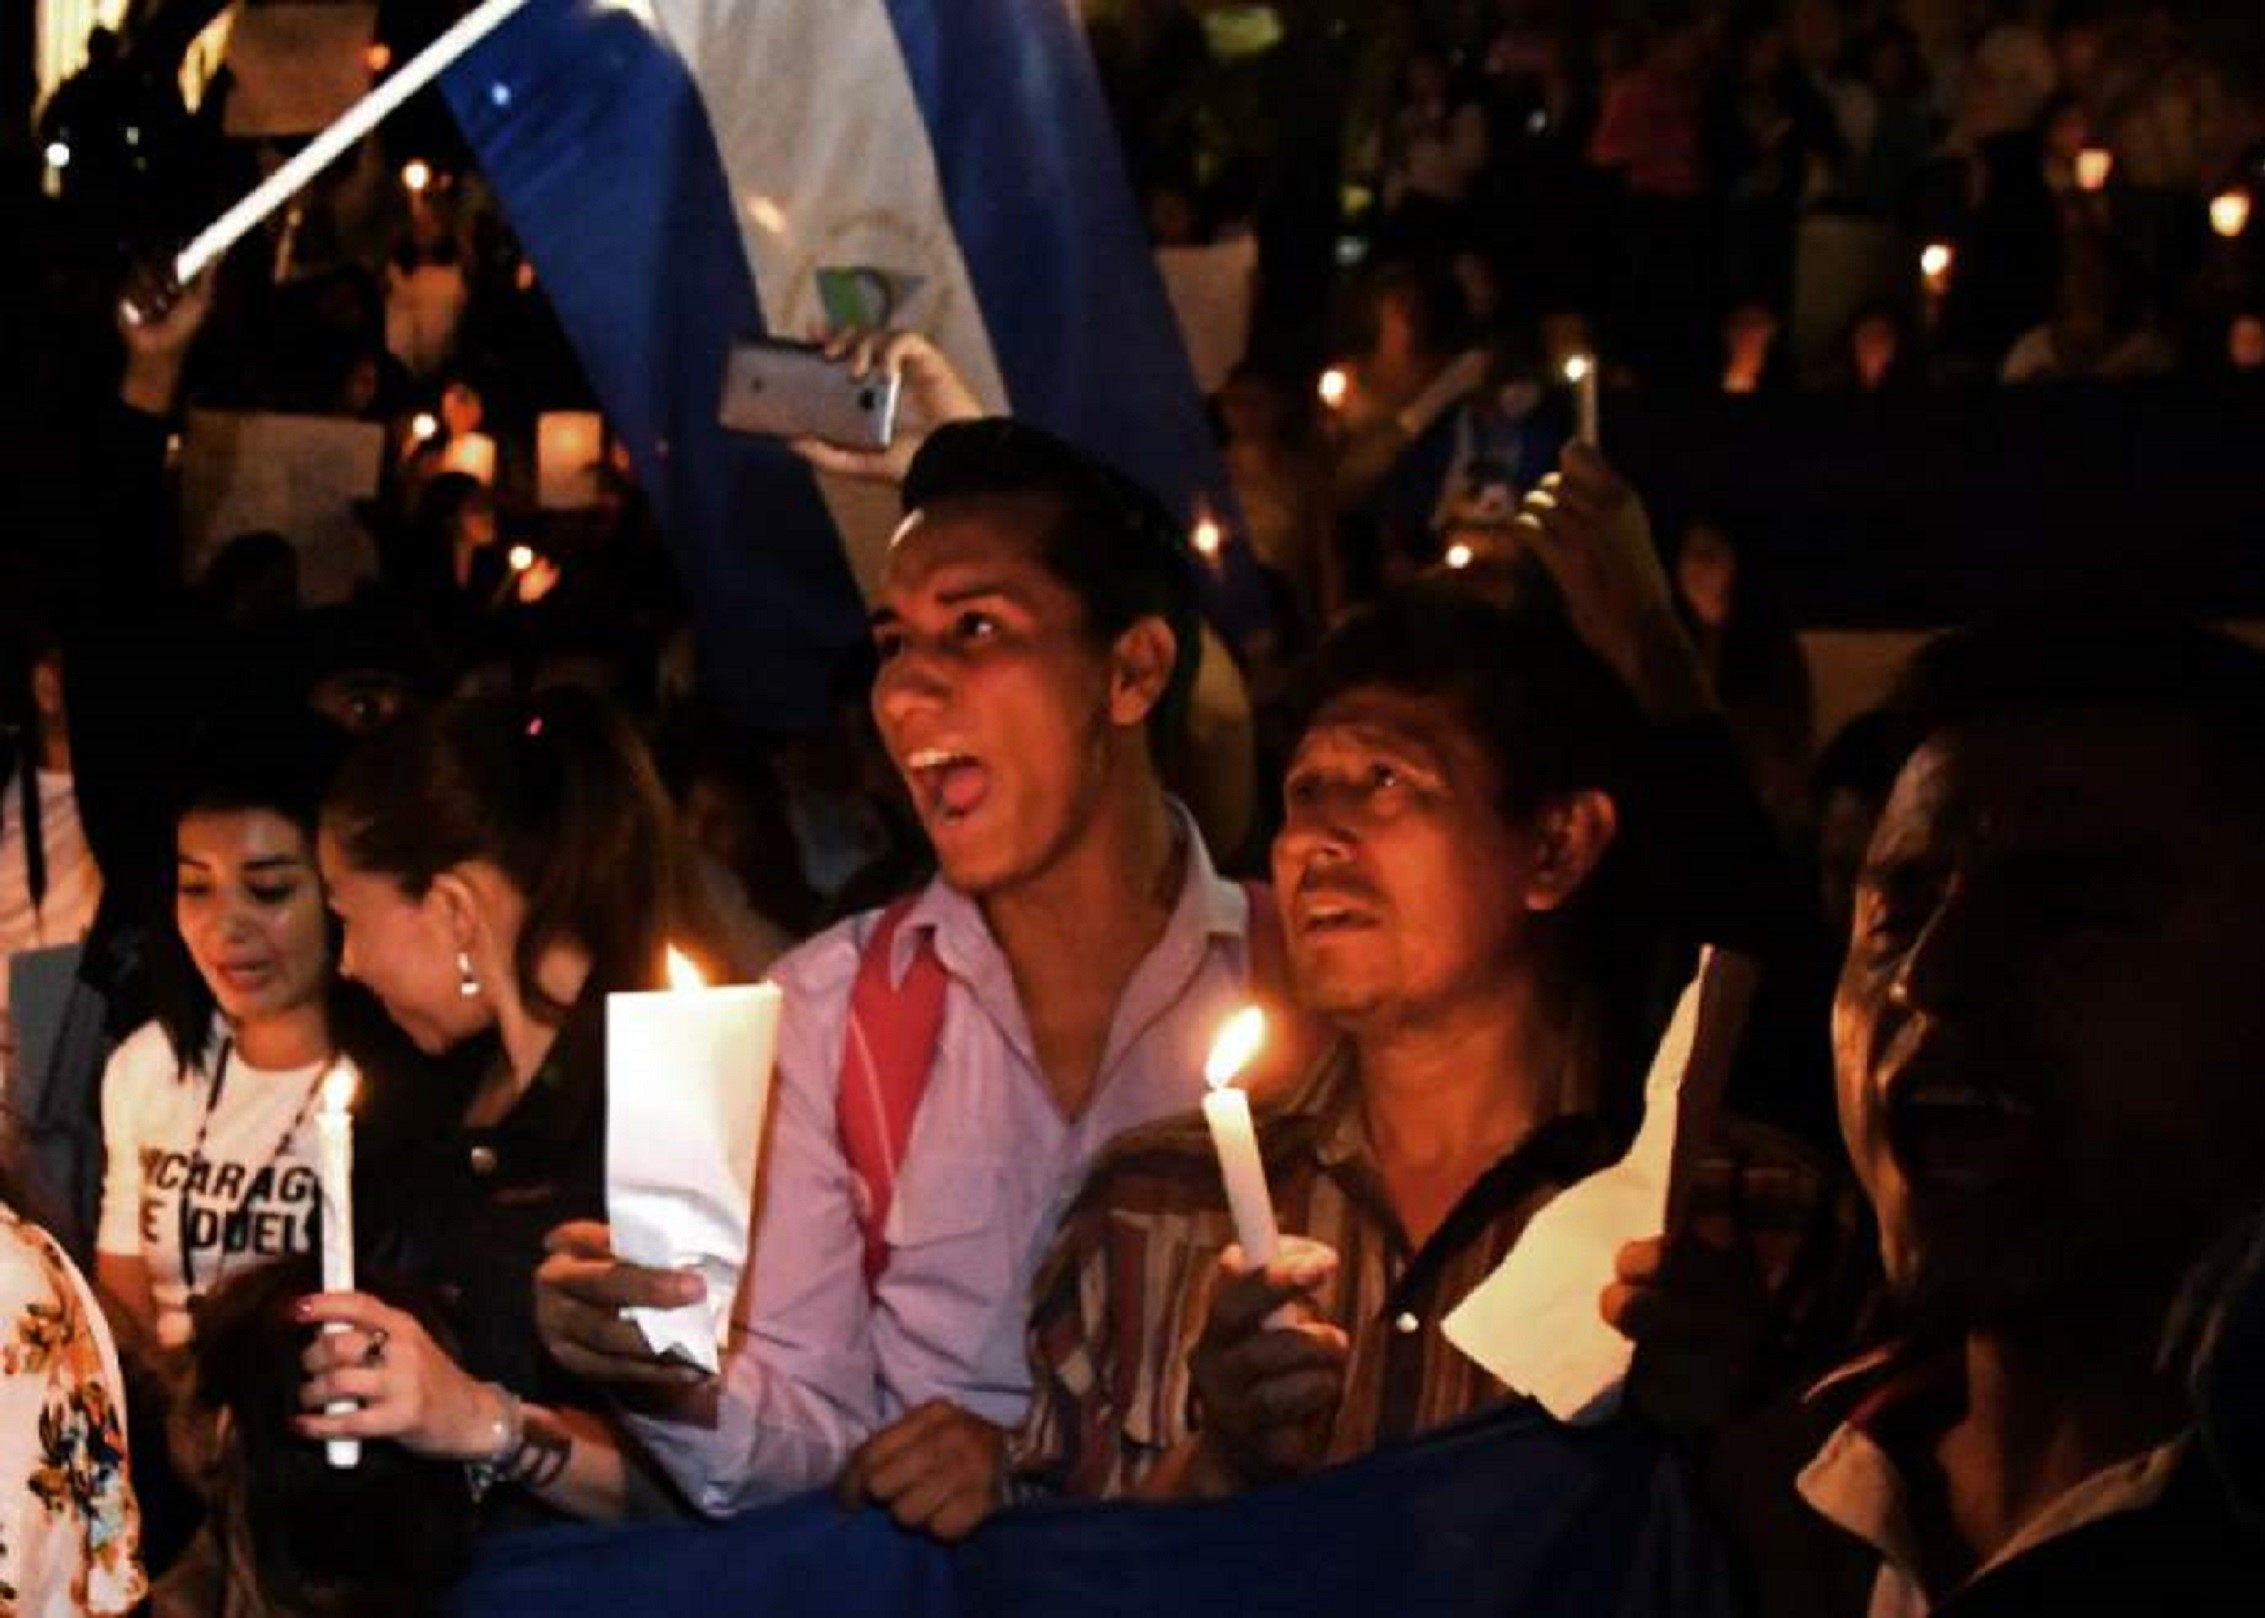 Three Months of Violent Conflict in Nicaragua with No End in Sight: An On-The-Ground Report